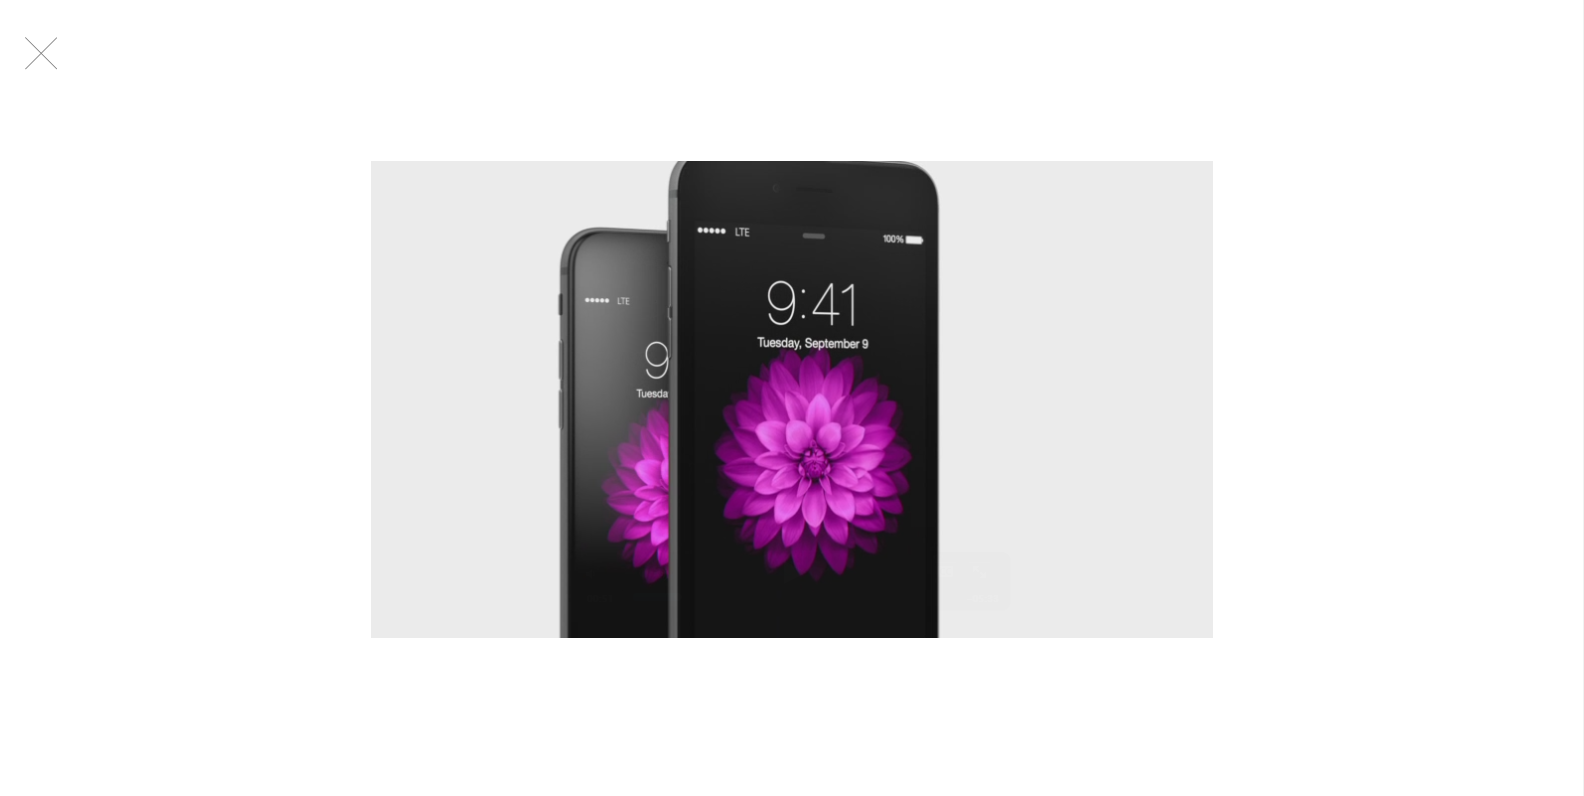 iPhone 6 promo video